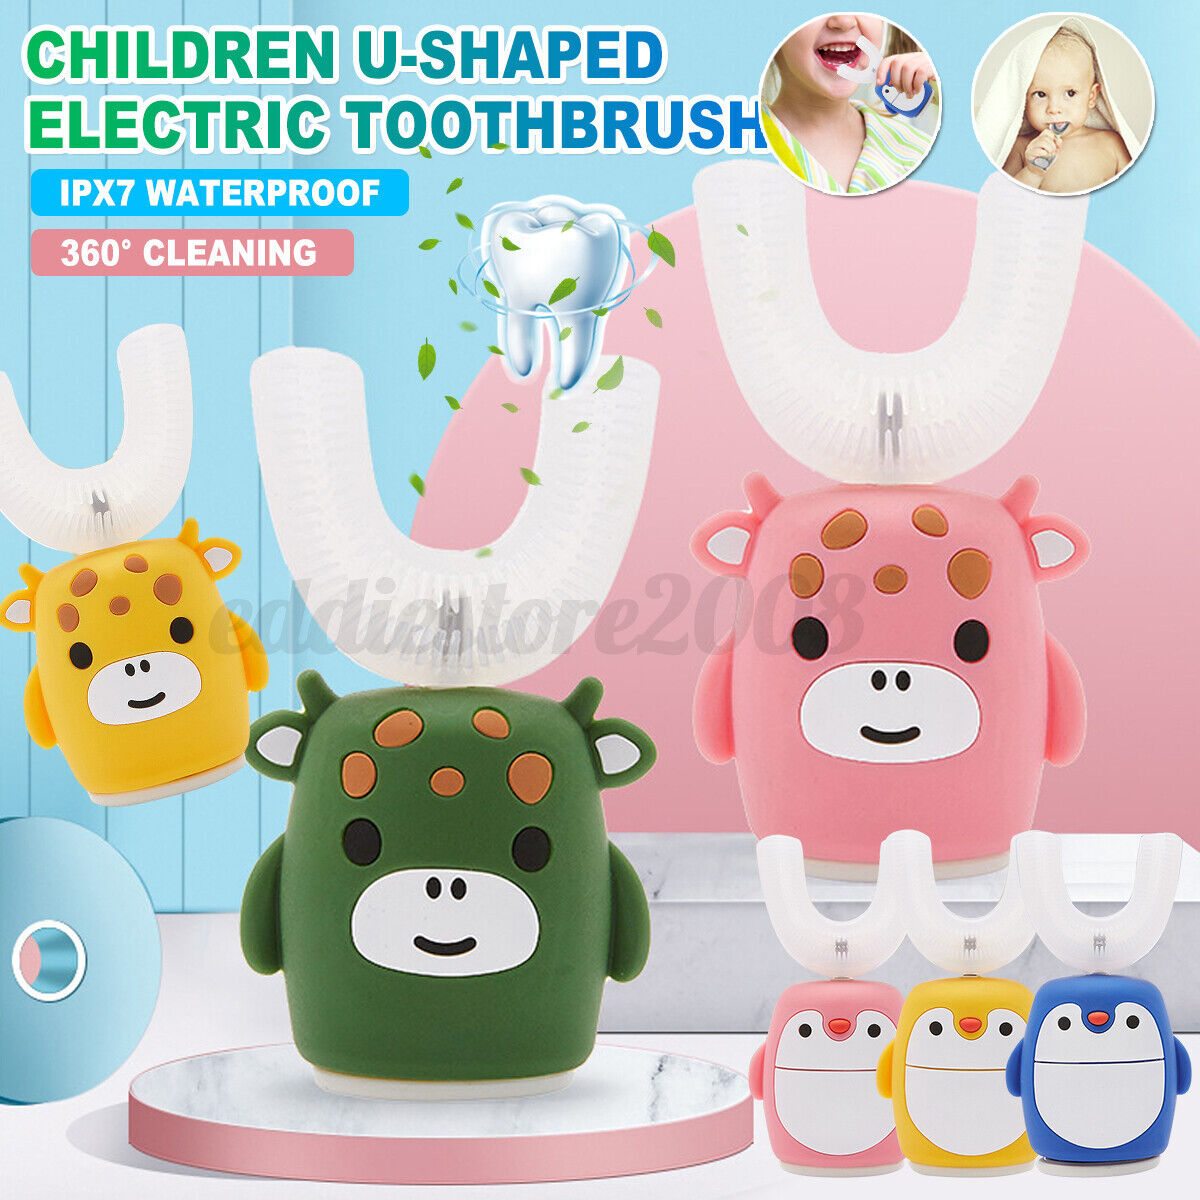 360° Silicone U-shaped Toothbrush Intelligent Charging Electric Toothbrush Kids